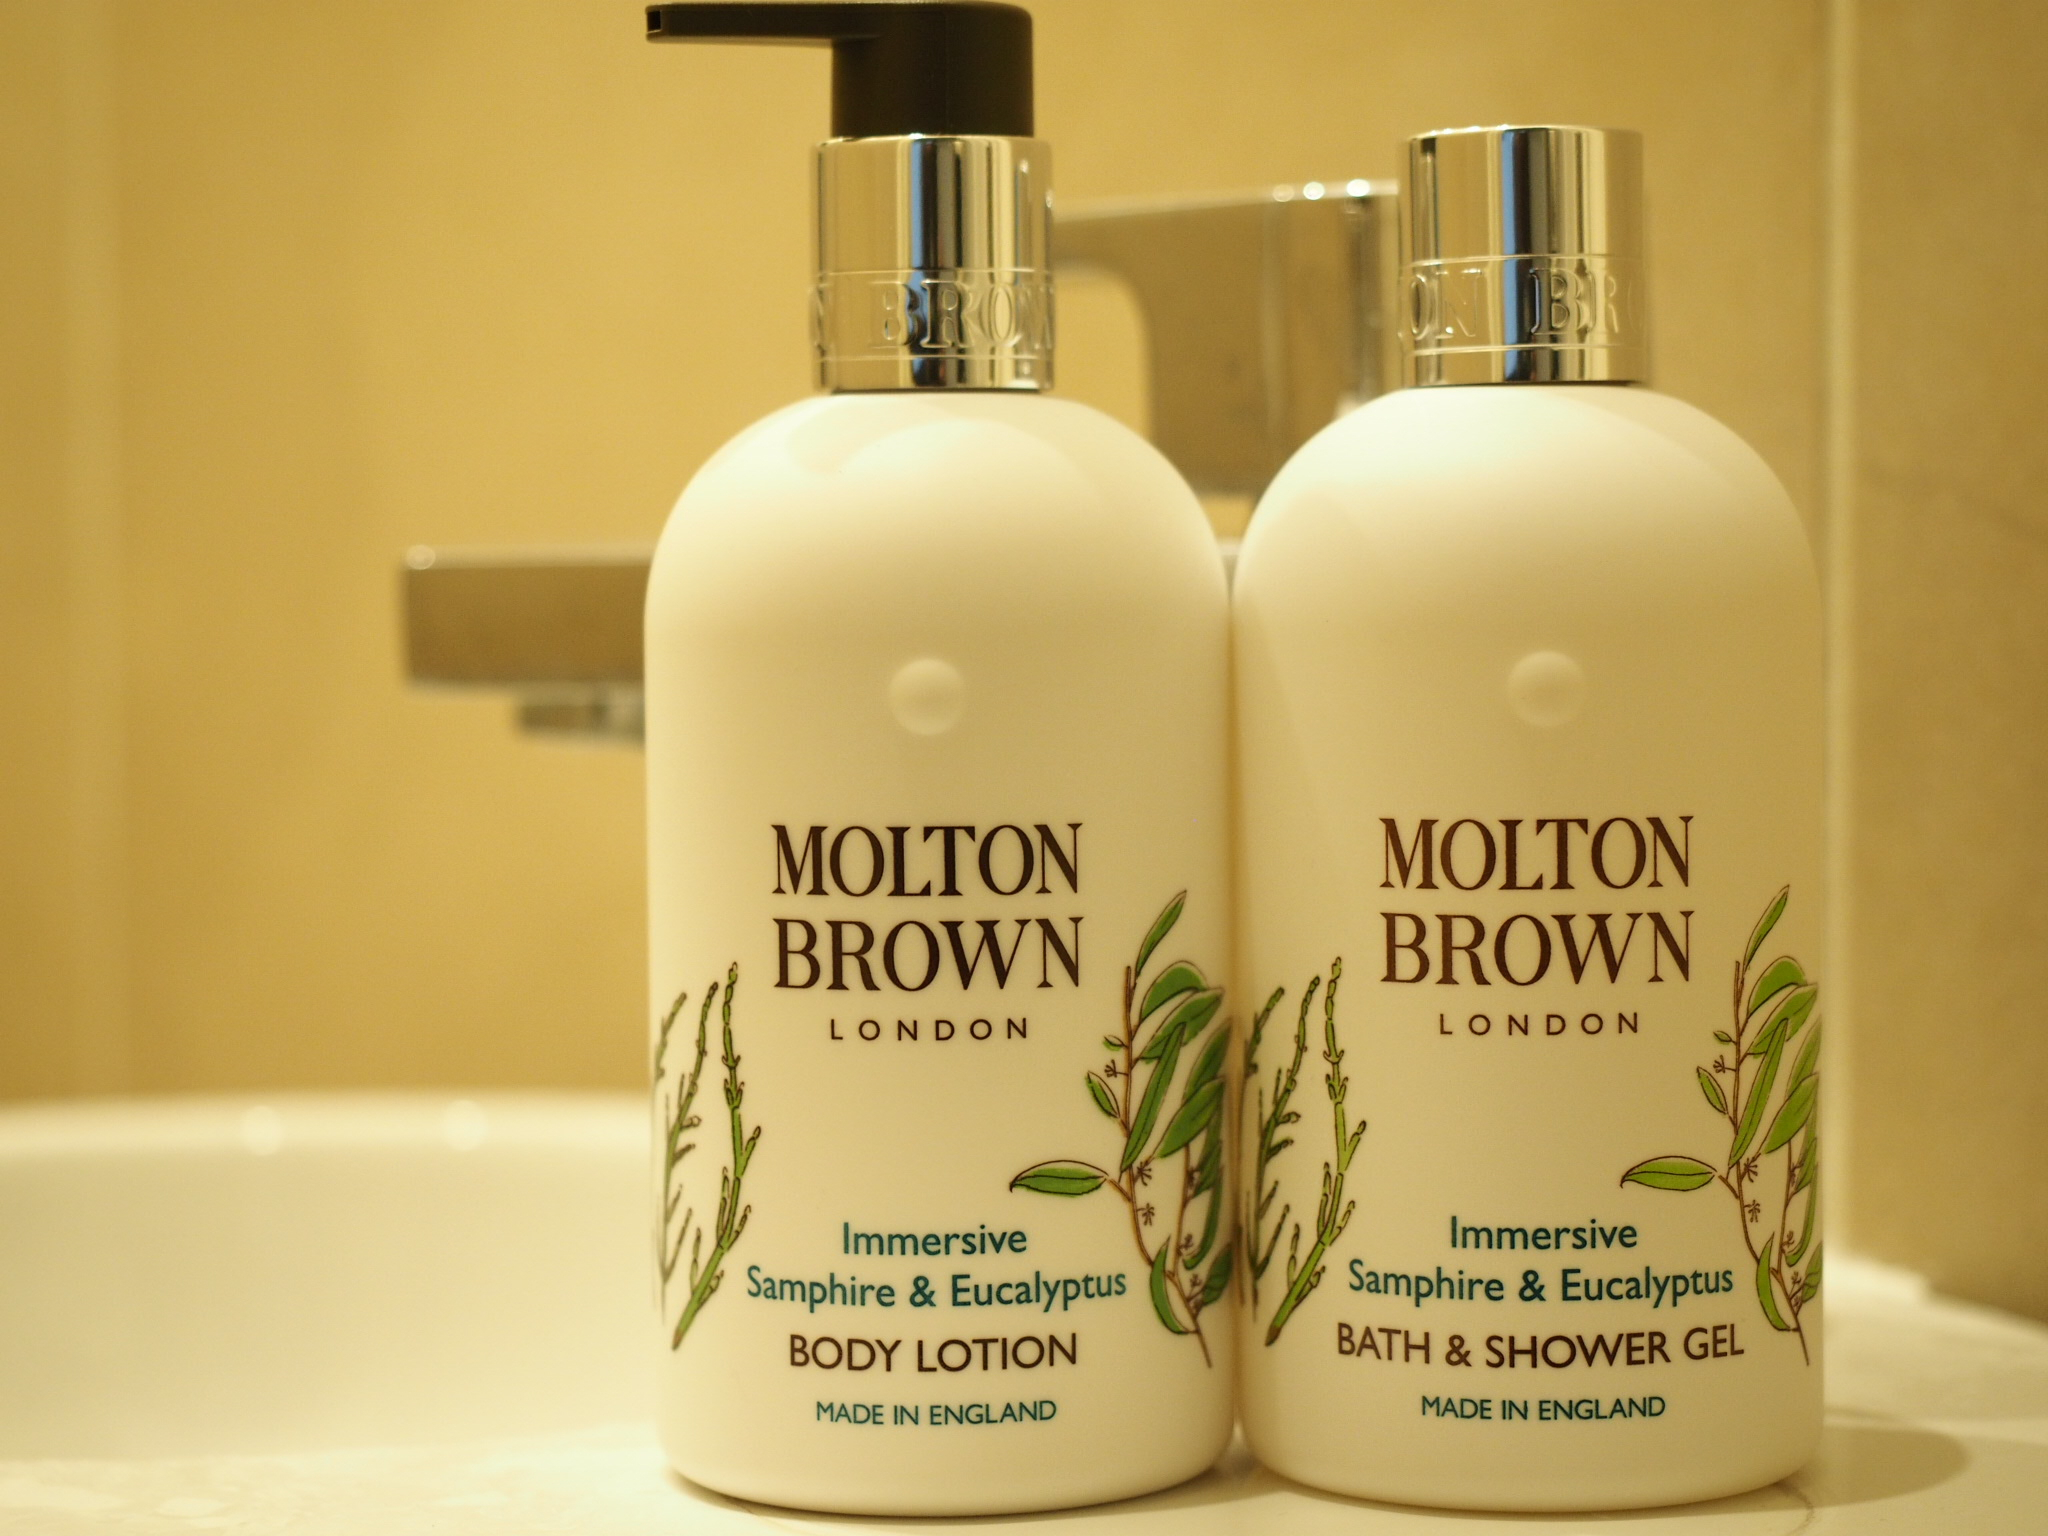 Molton Brown Bath And Shower Embrace The Sea With The Molton Brown Seabourne Collection